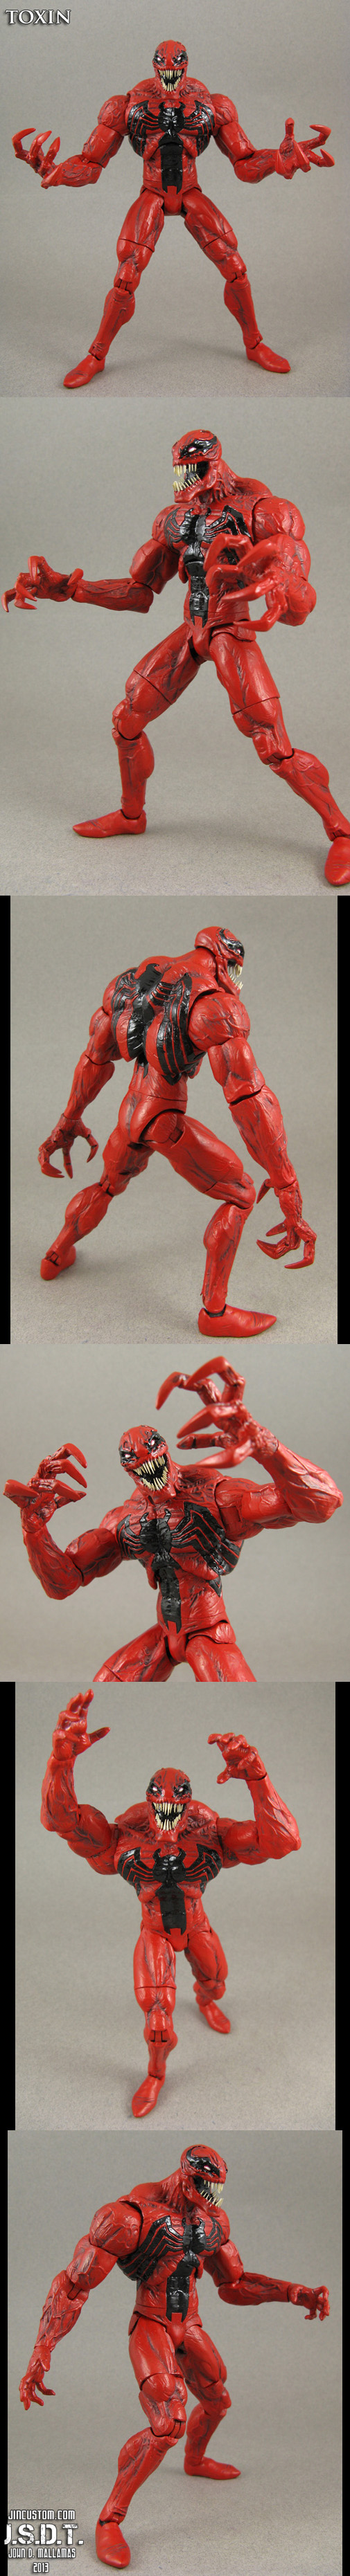 Eddie Brock Toxin Custom action figure by Jin-Saotome